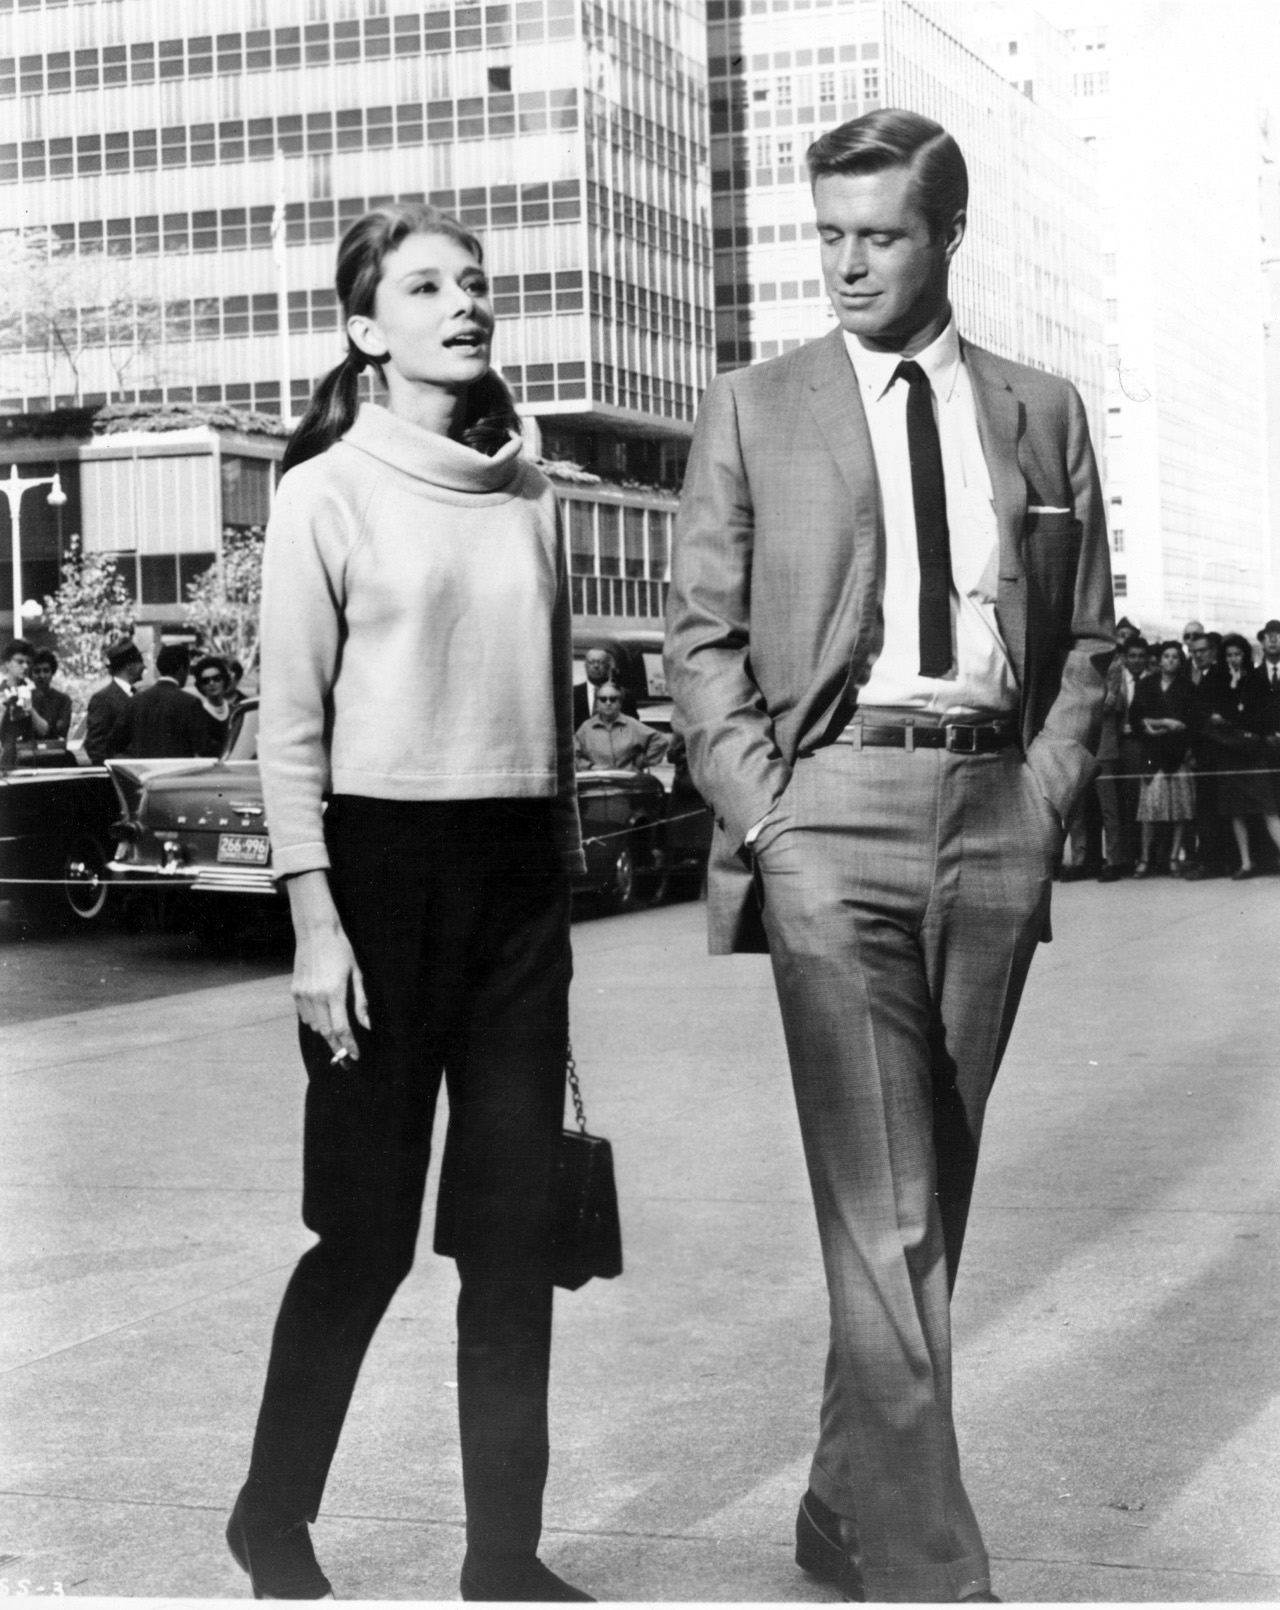 Audrey Hepburn And George Peppard On The Set Of Breakfast